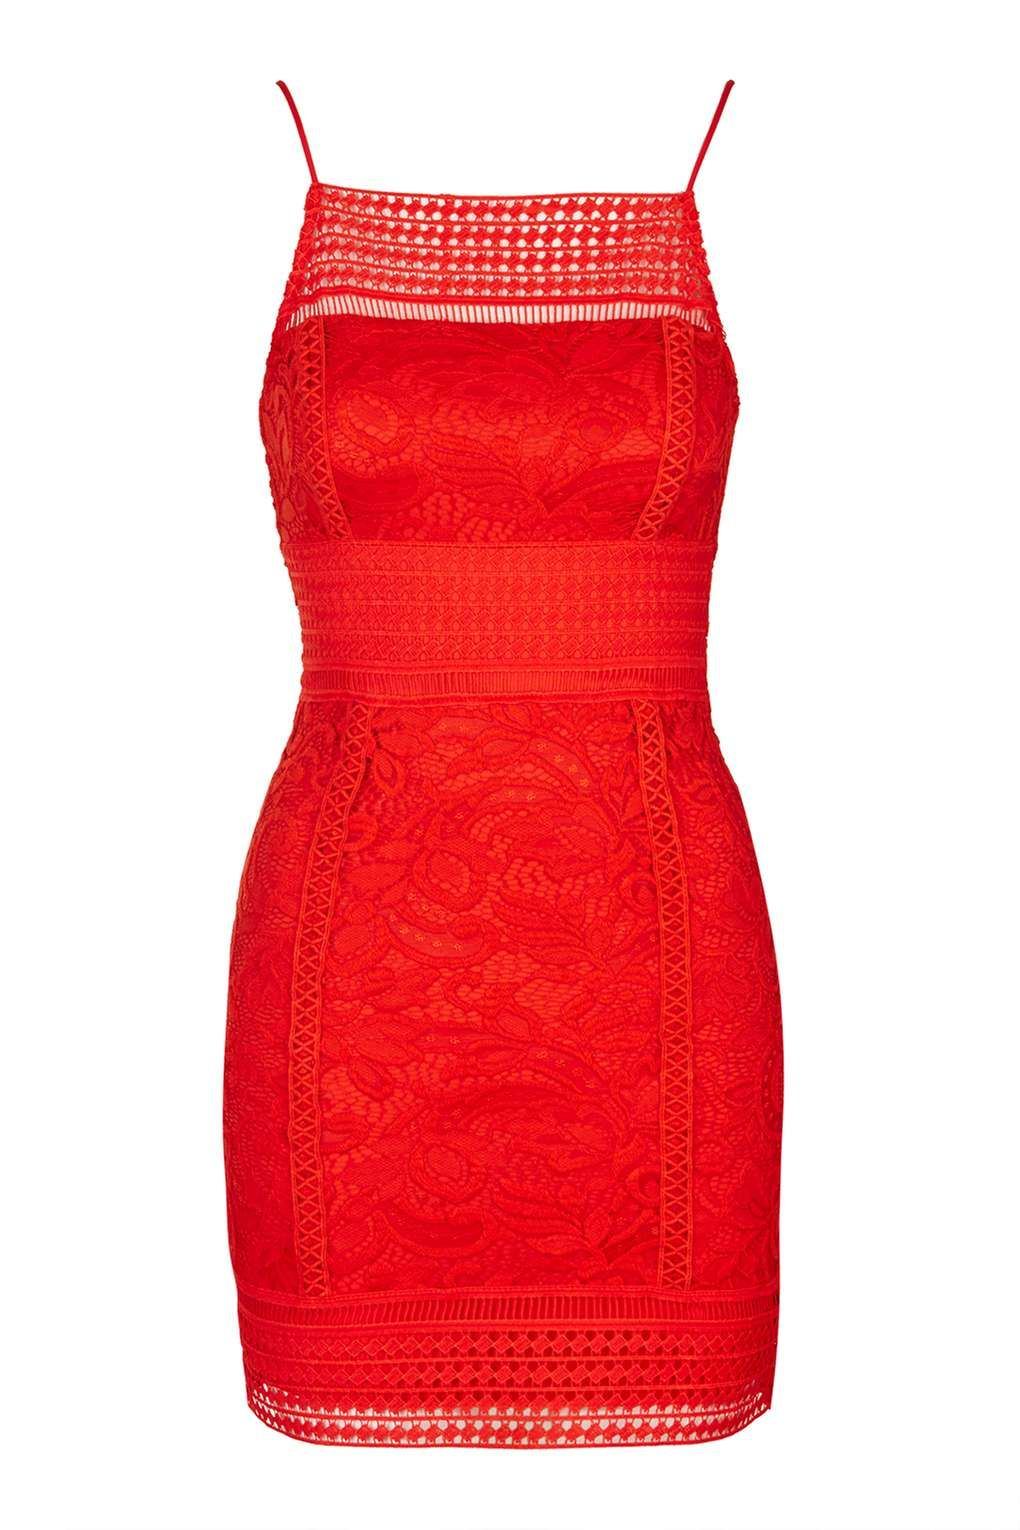 petite red strapless bodycon dress